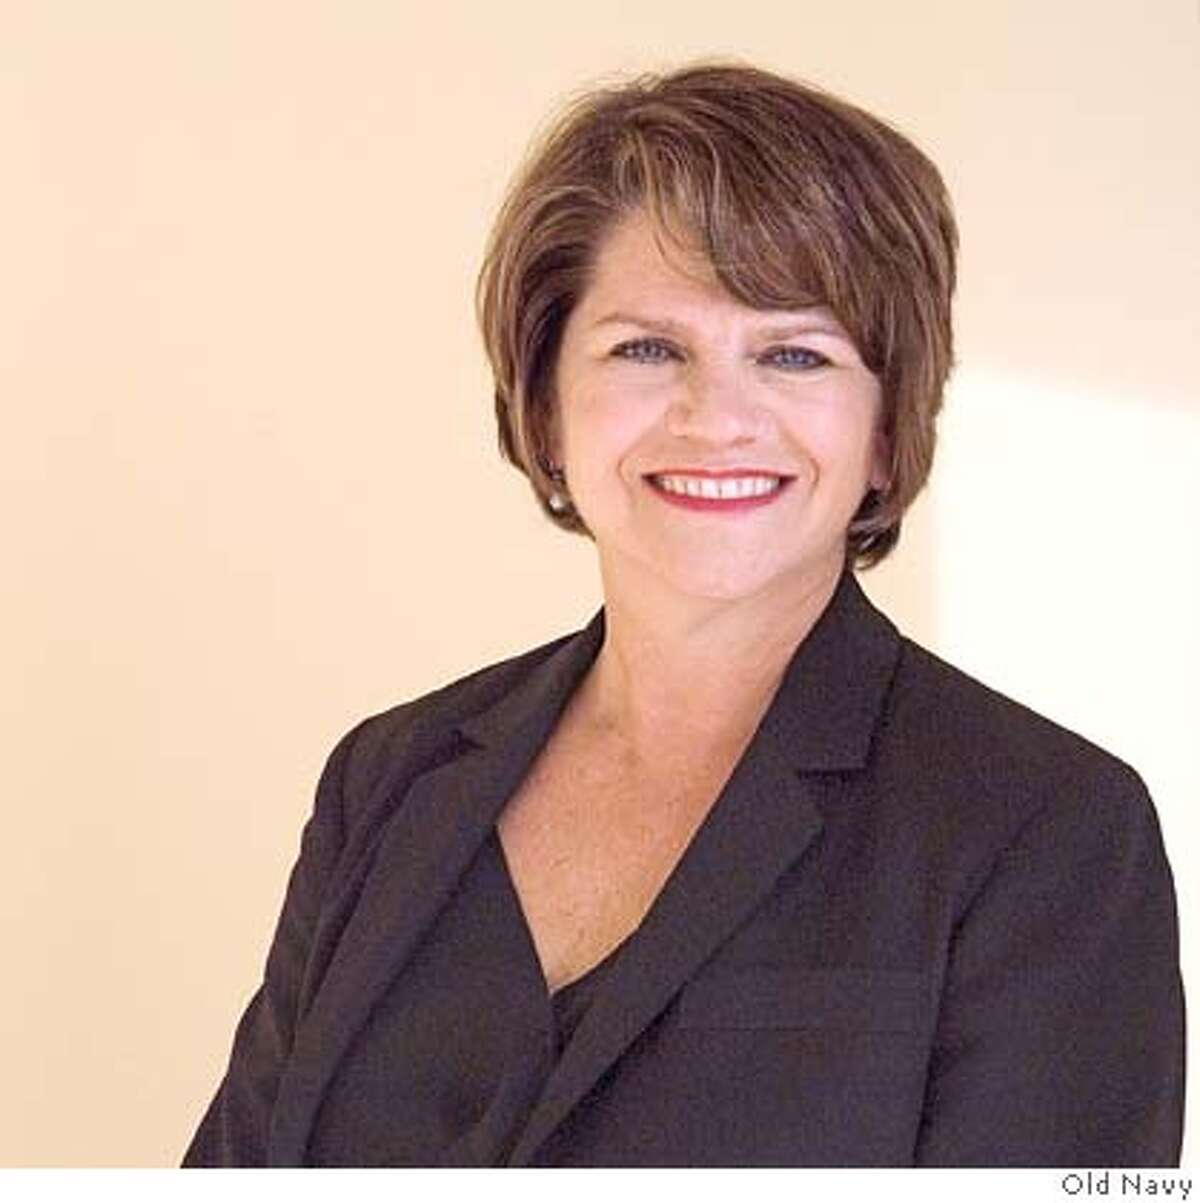 Photo of Dawn Robertson, new CEO of Old Navy.